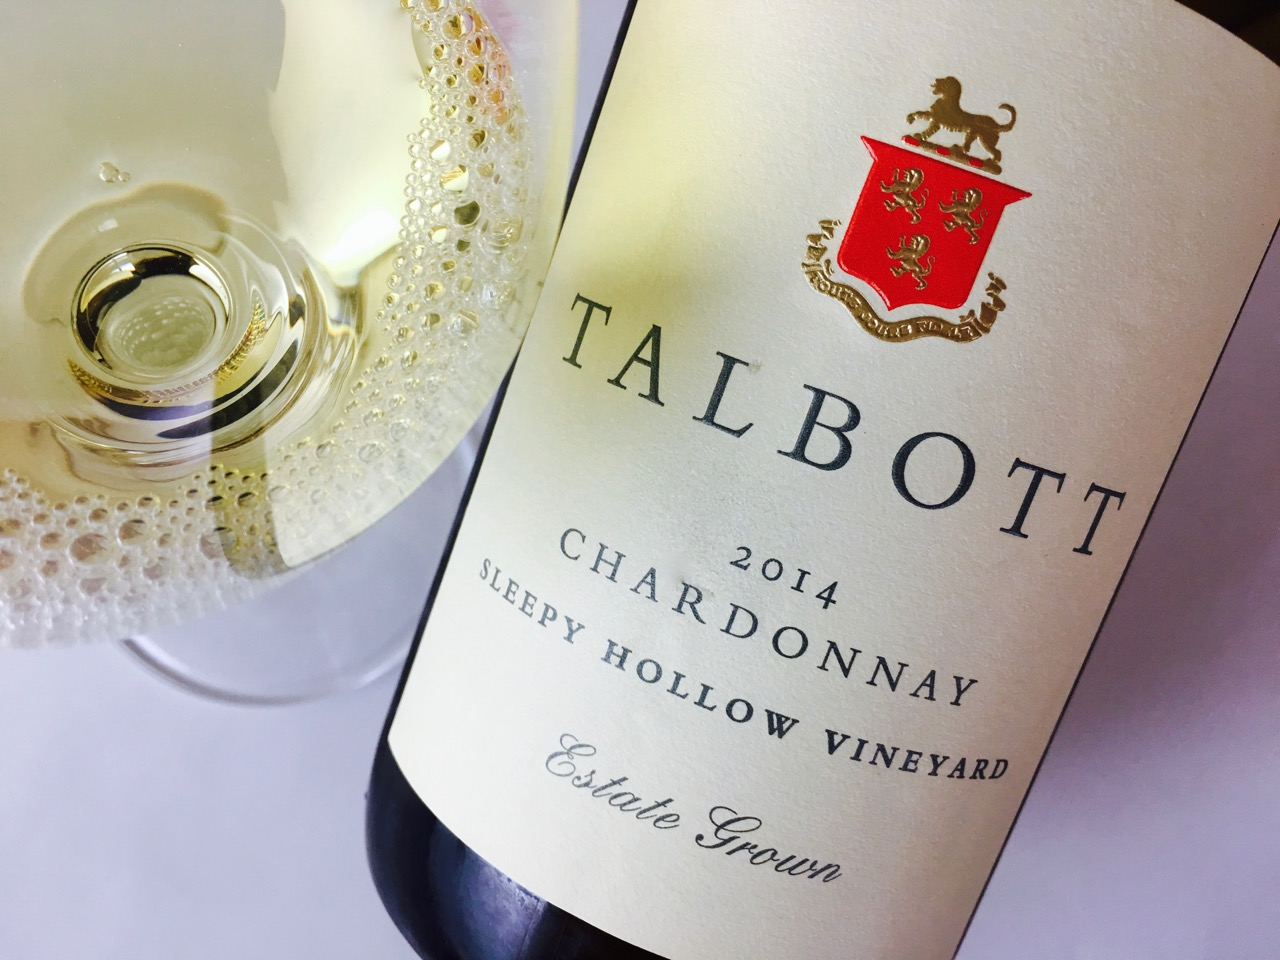 2014 Talbott Chardonnay Sleepy Hollow Vineyard Santa Lucia Highlands